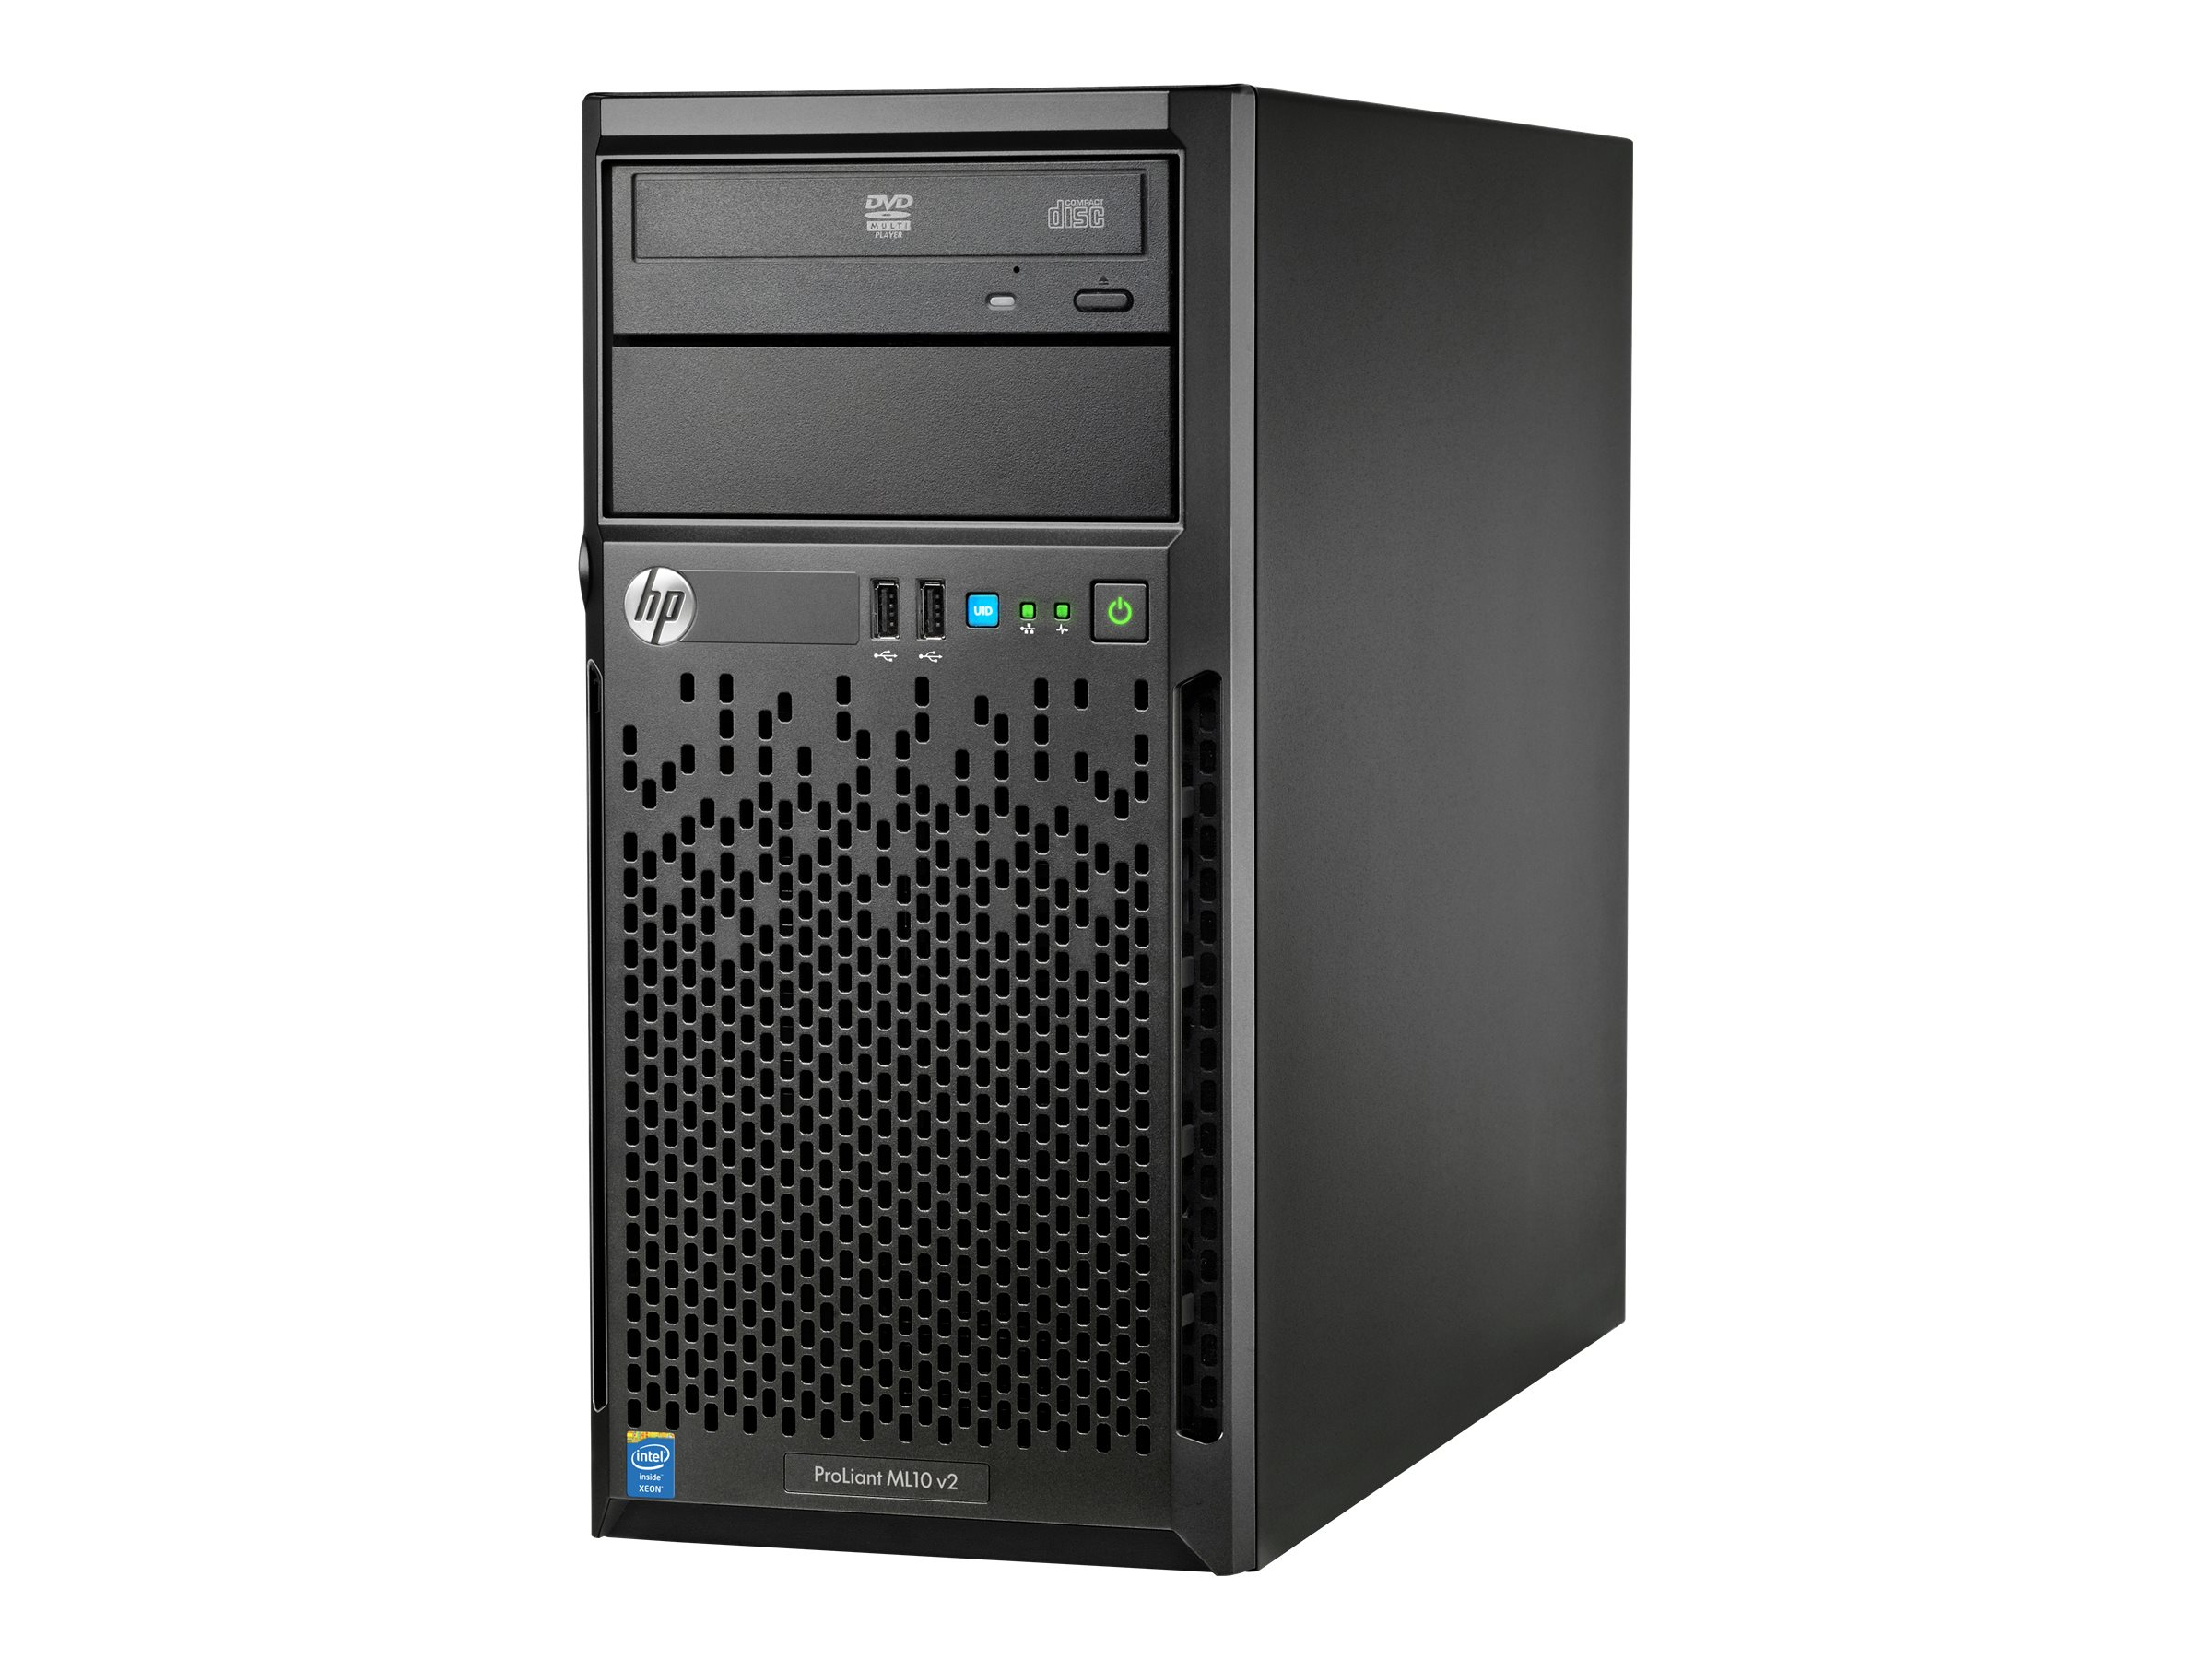 HPE Smart Buy ProLiant ML10 v2 Intel 3.1GHz Pentium, 812126-S01, 20862871, Servers